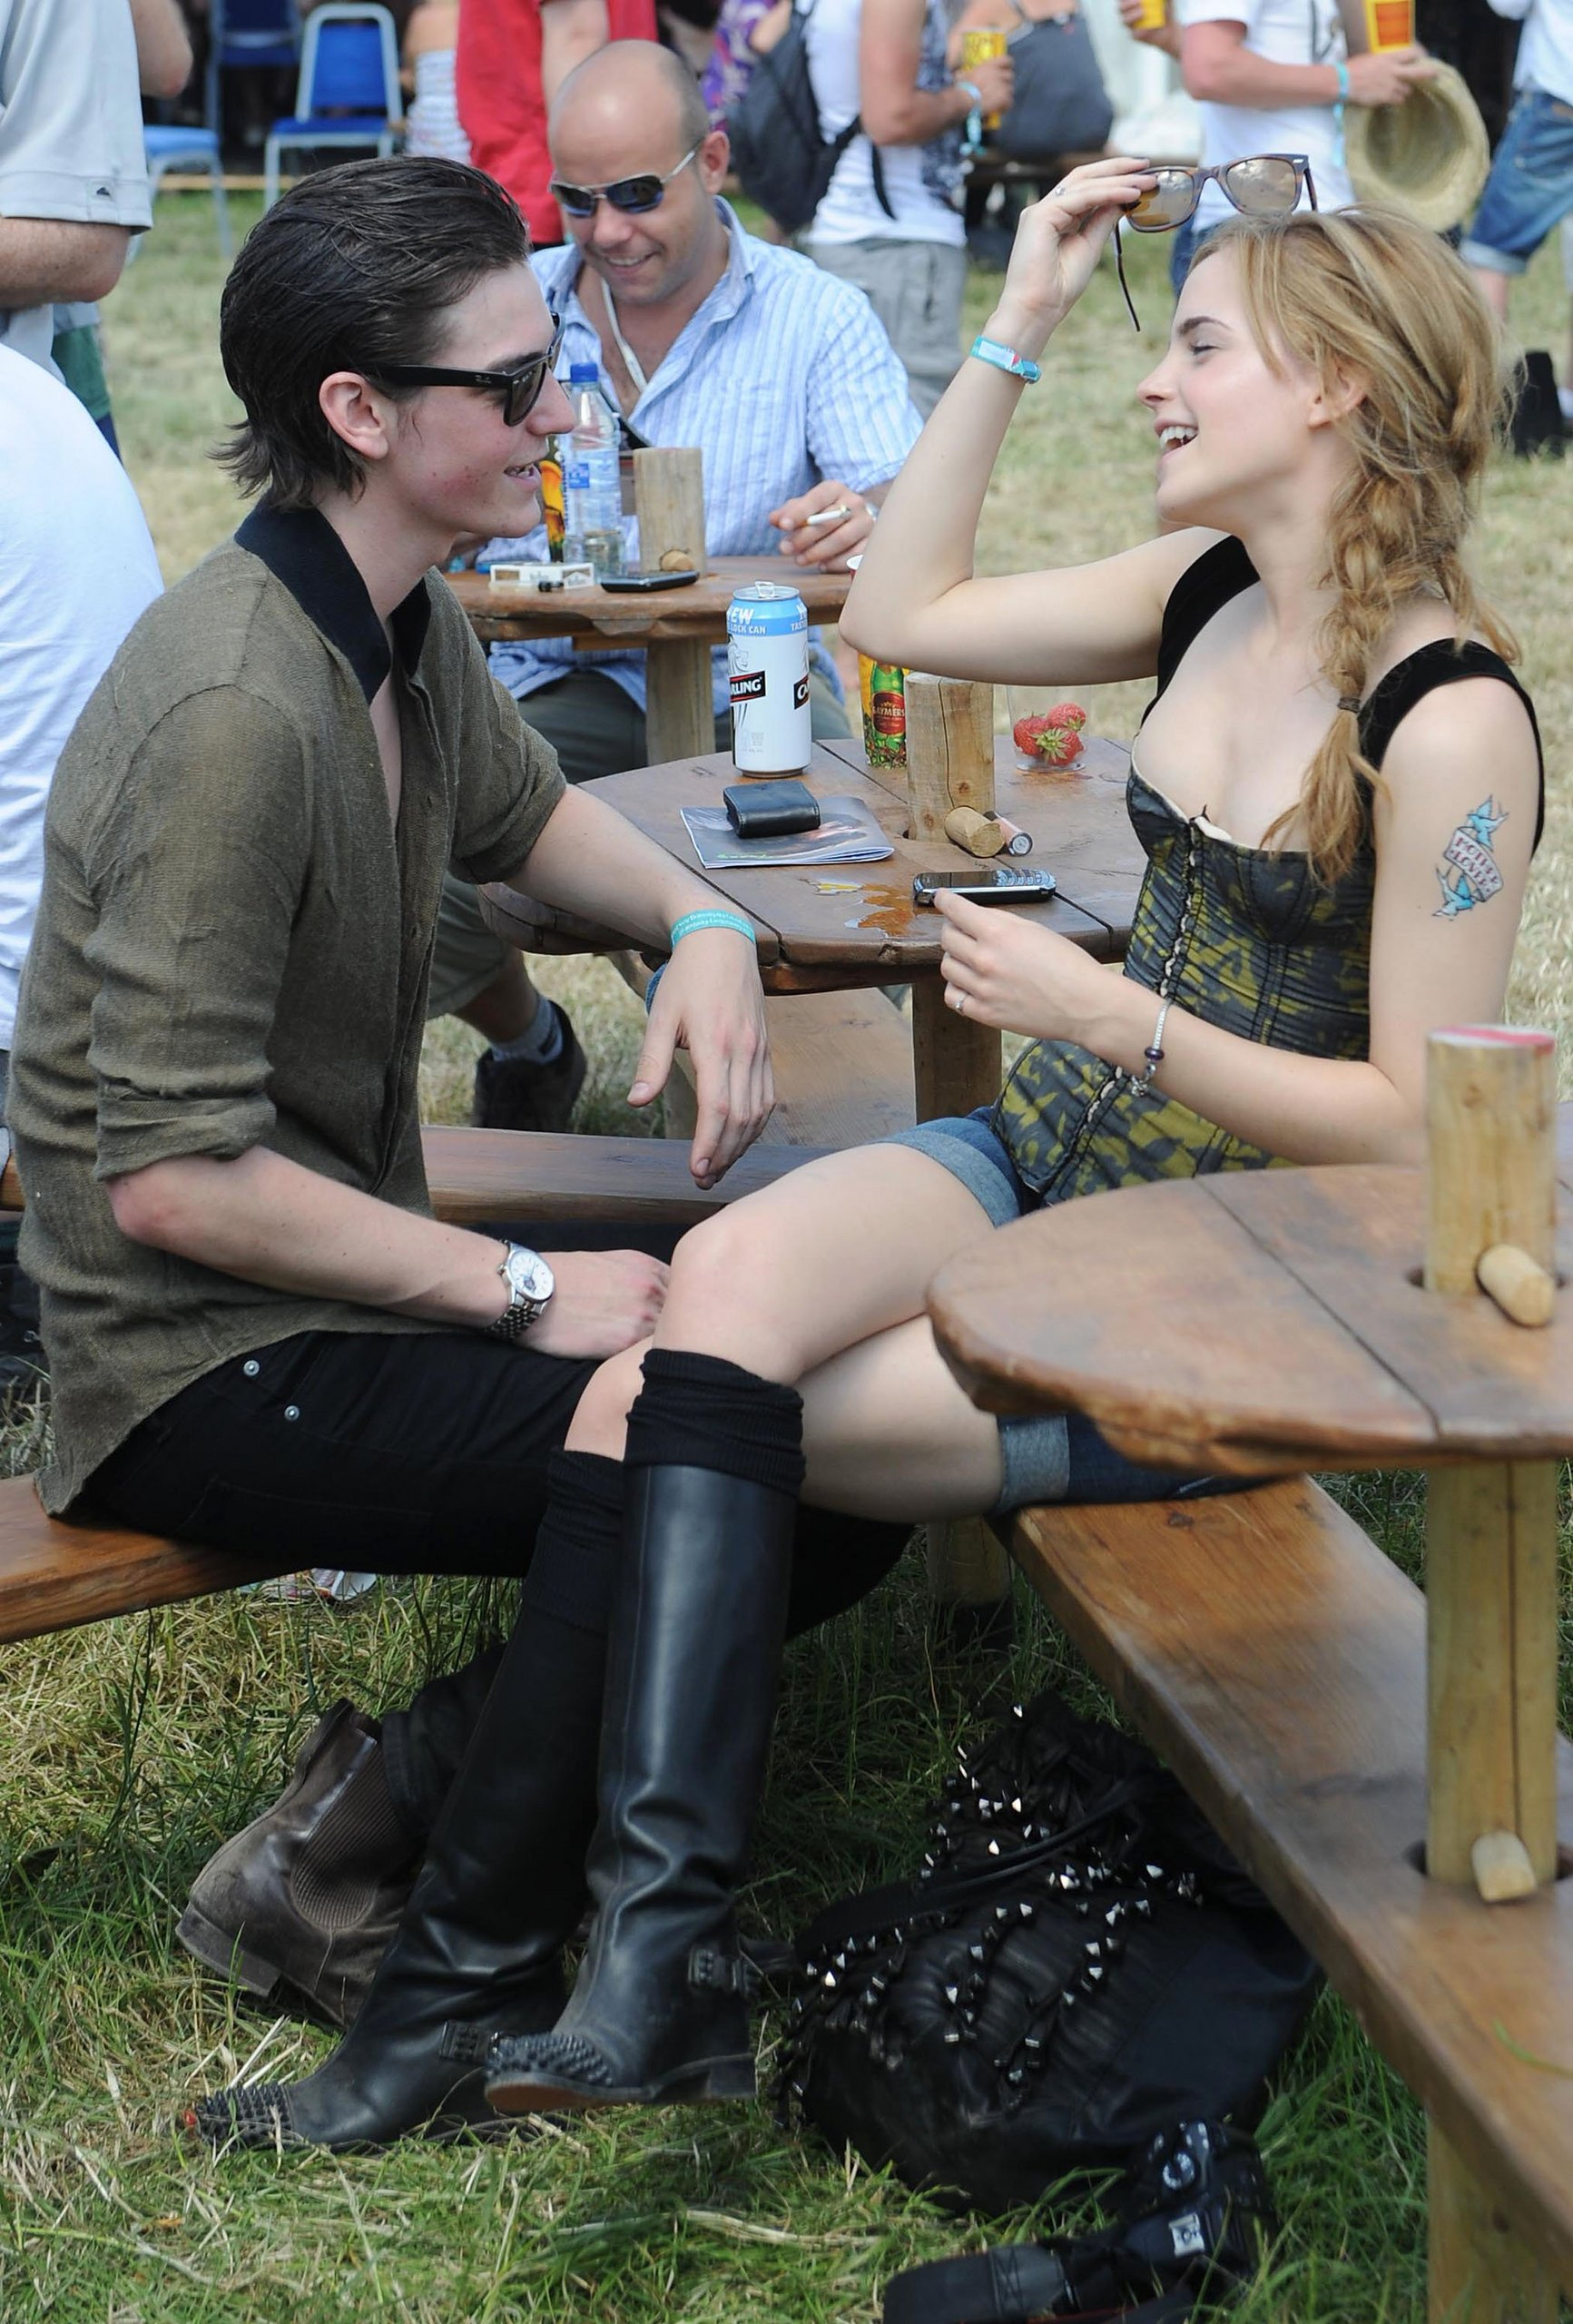 2010 Glastonbury संगीत Festival in Somerset, England (25.06.10) [HQ]